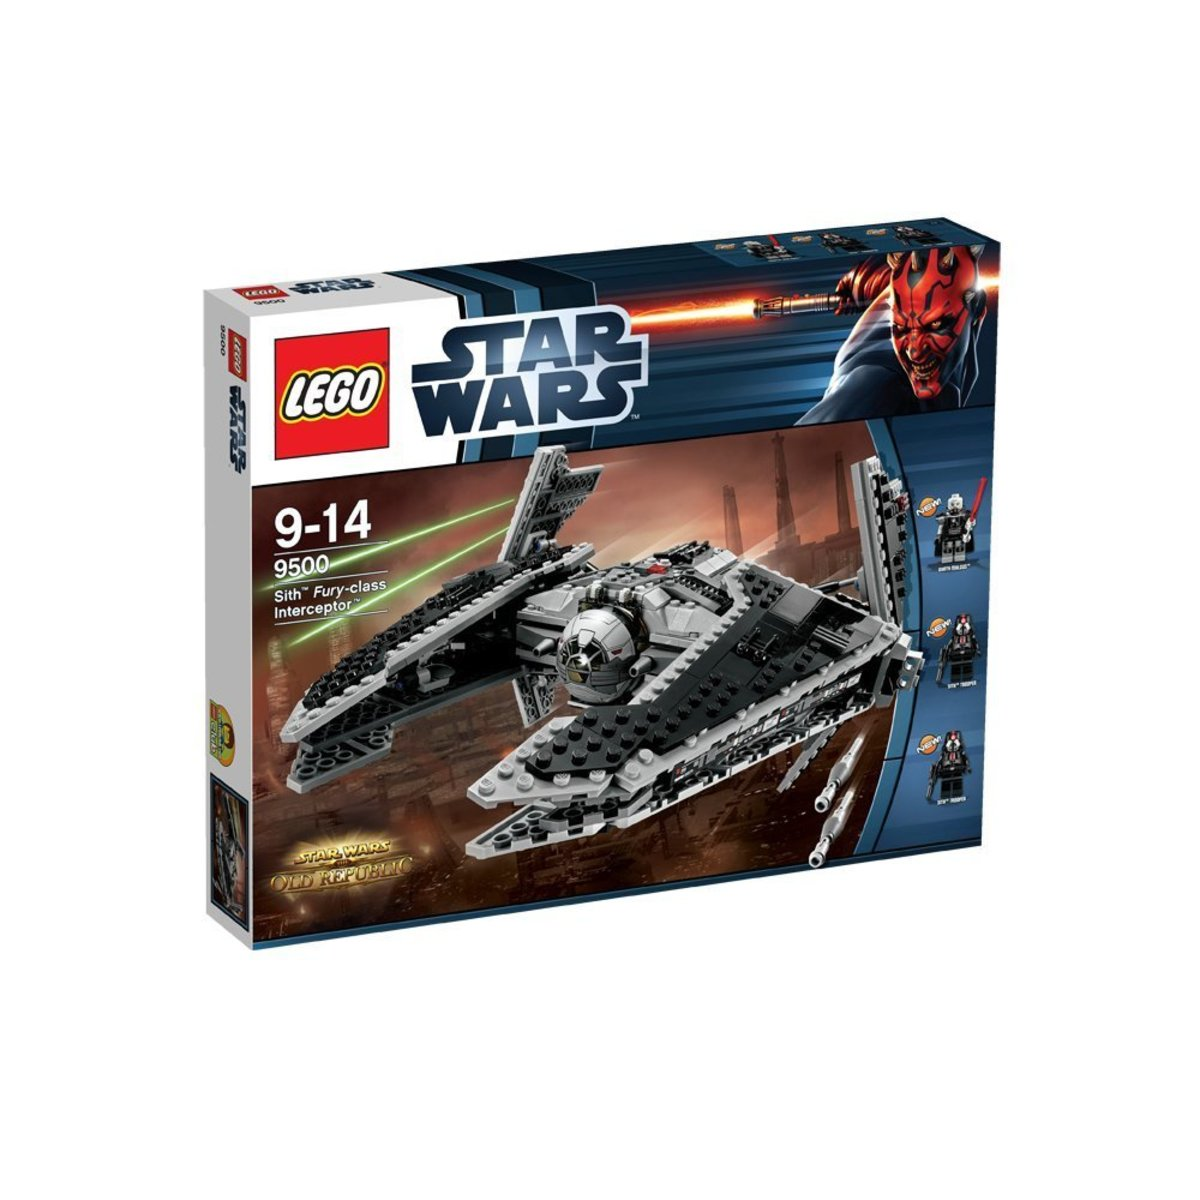 LEGO Star Wars Sith Fury-Class Interceptor 9500 Box